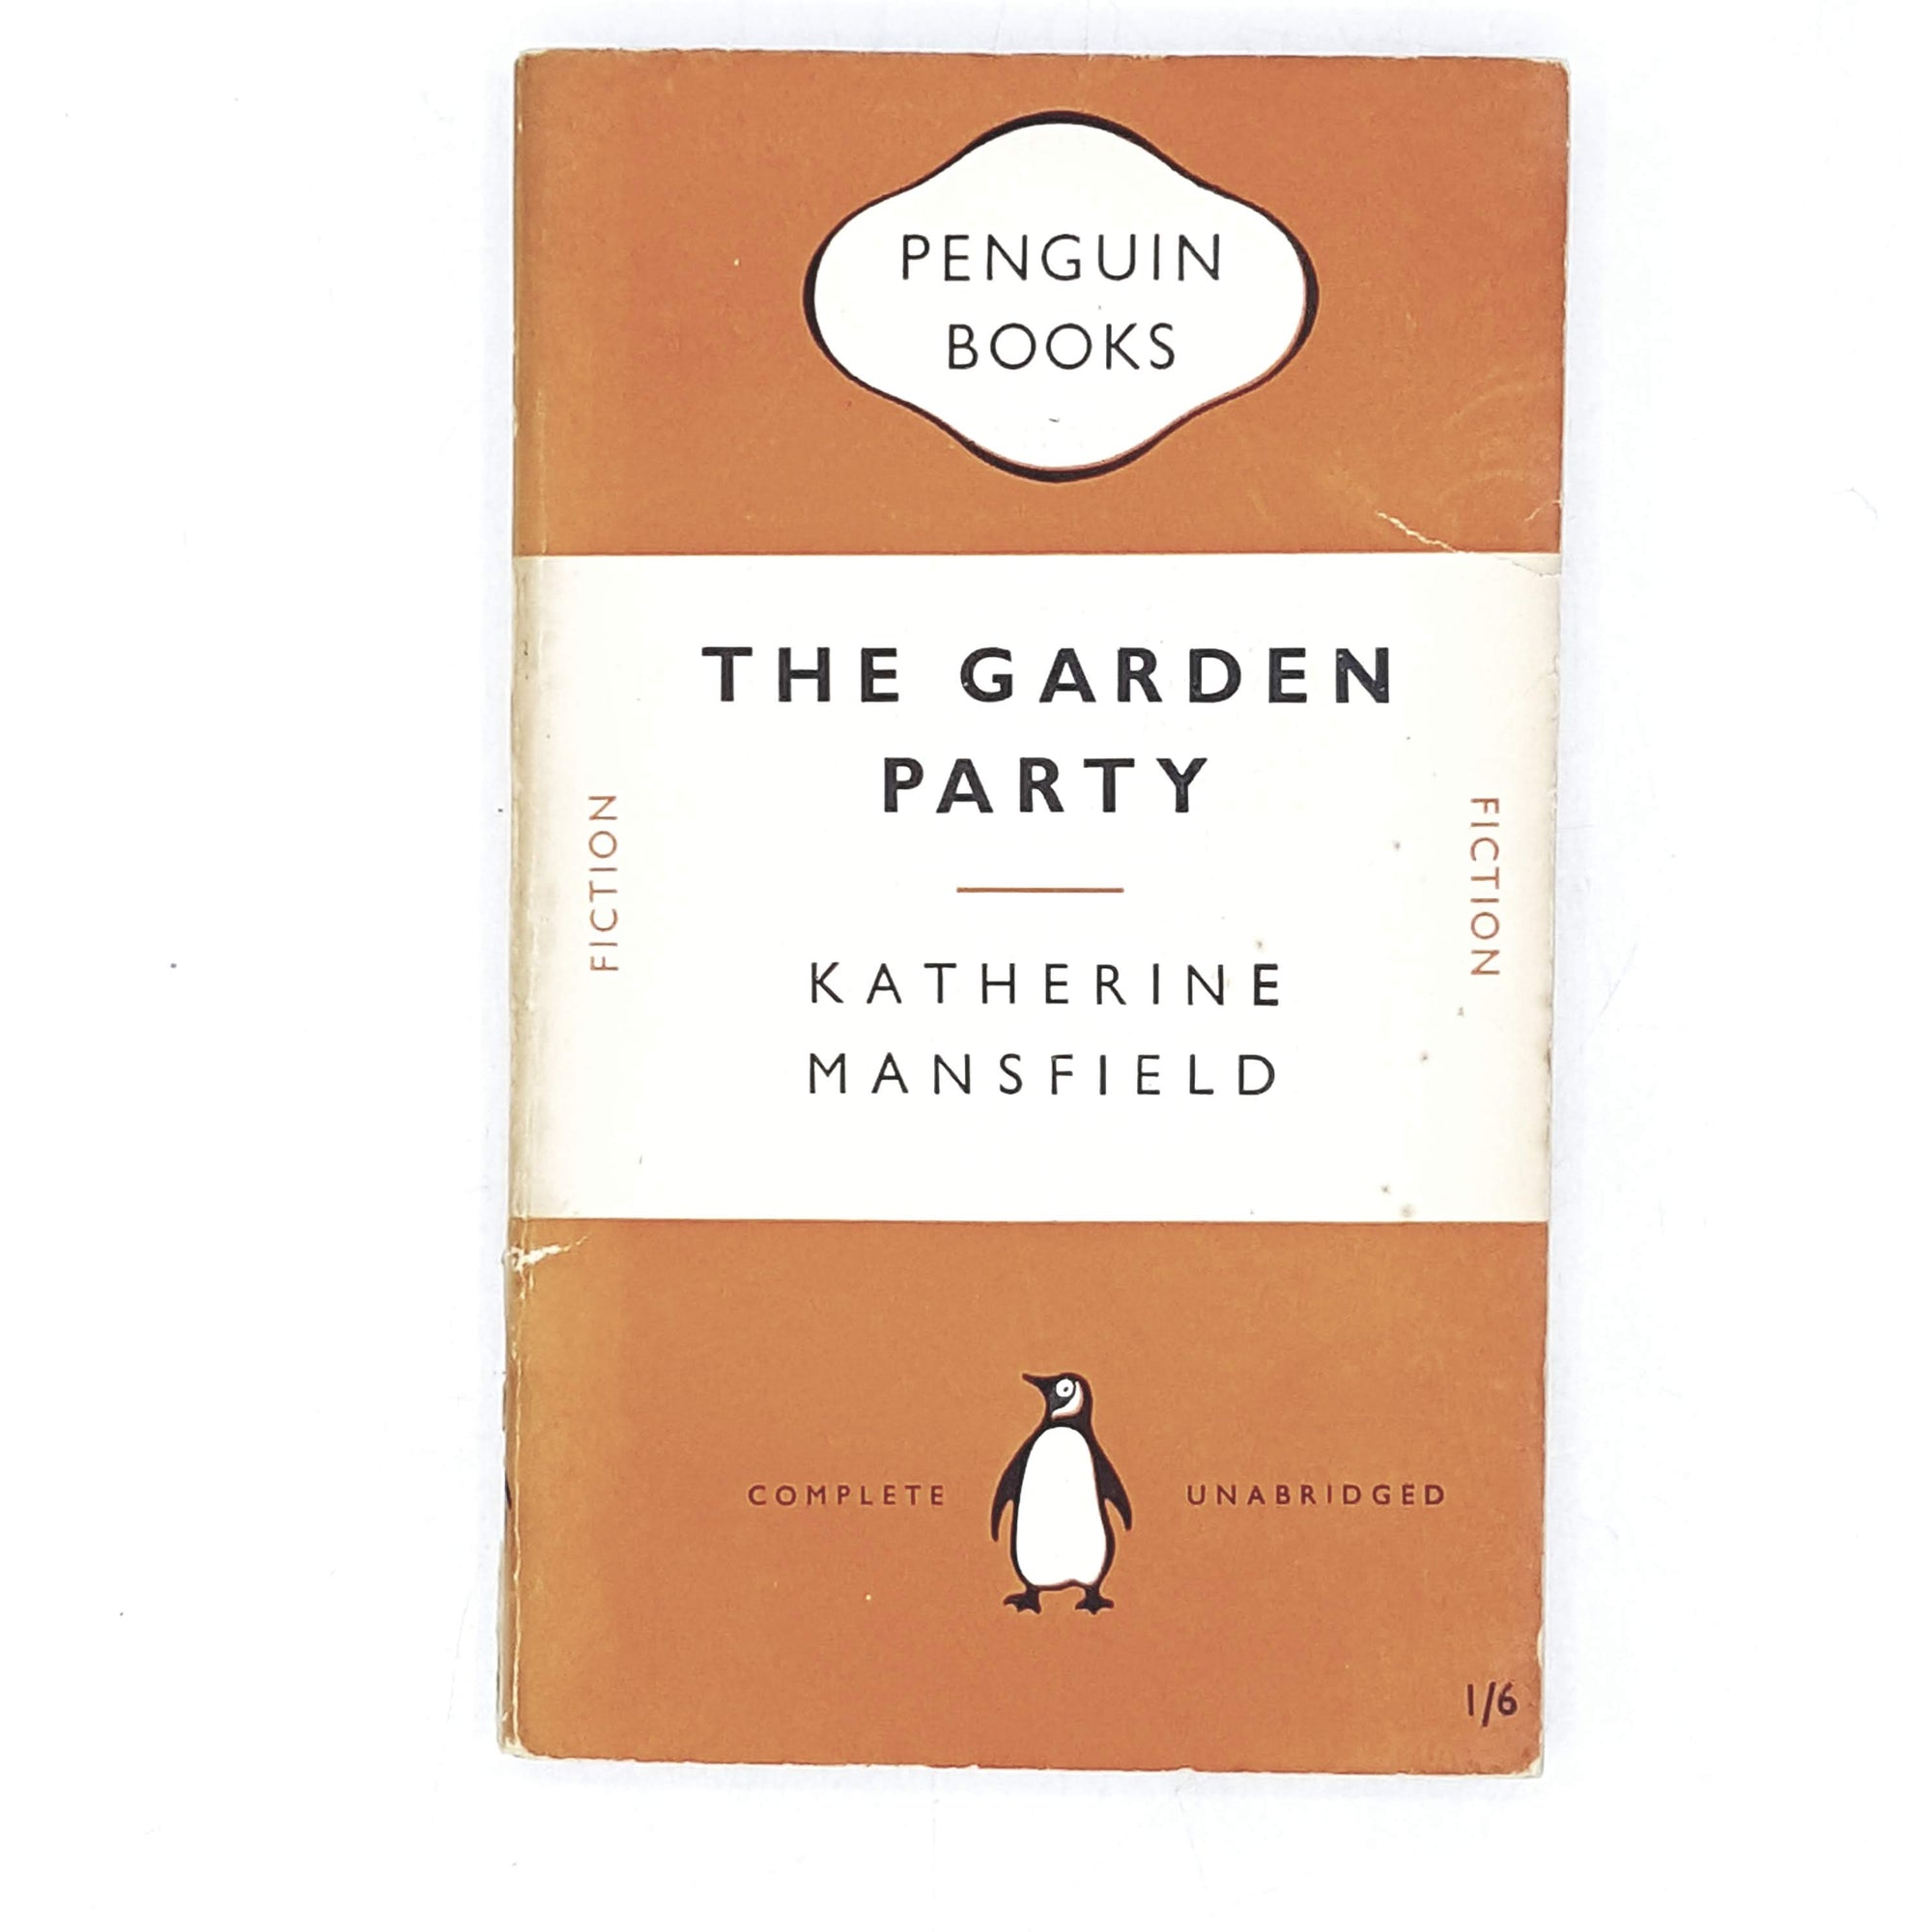 Vintage Penguin The Garden Party by Katherine Mansfield 1951